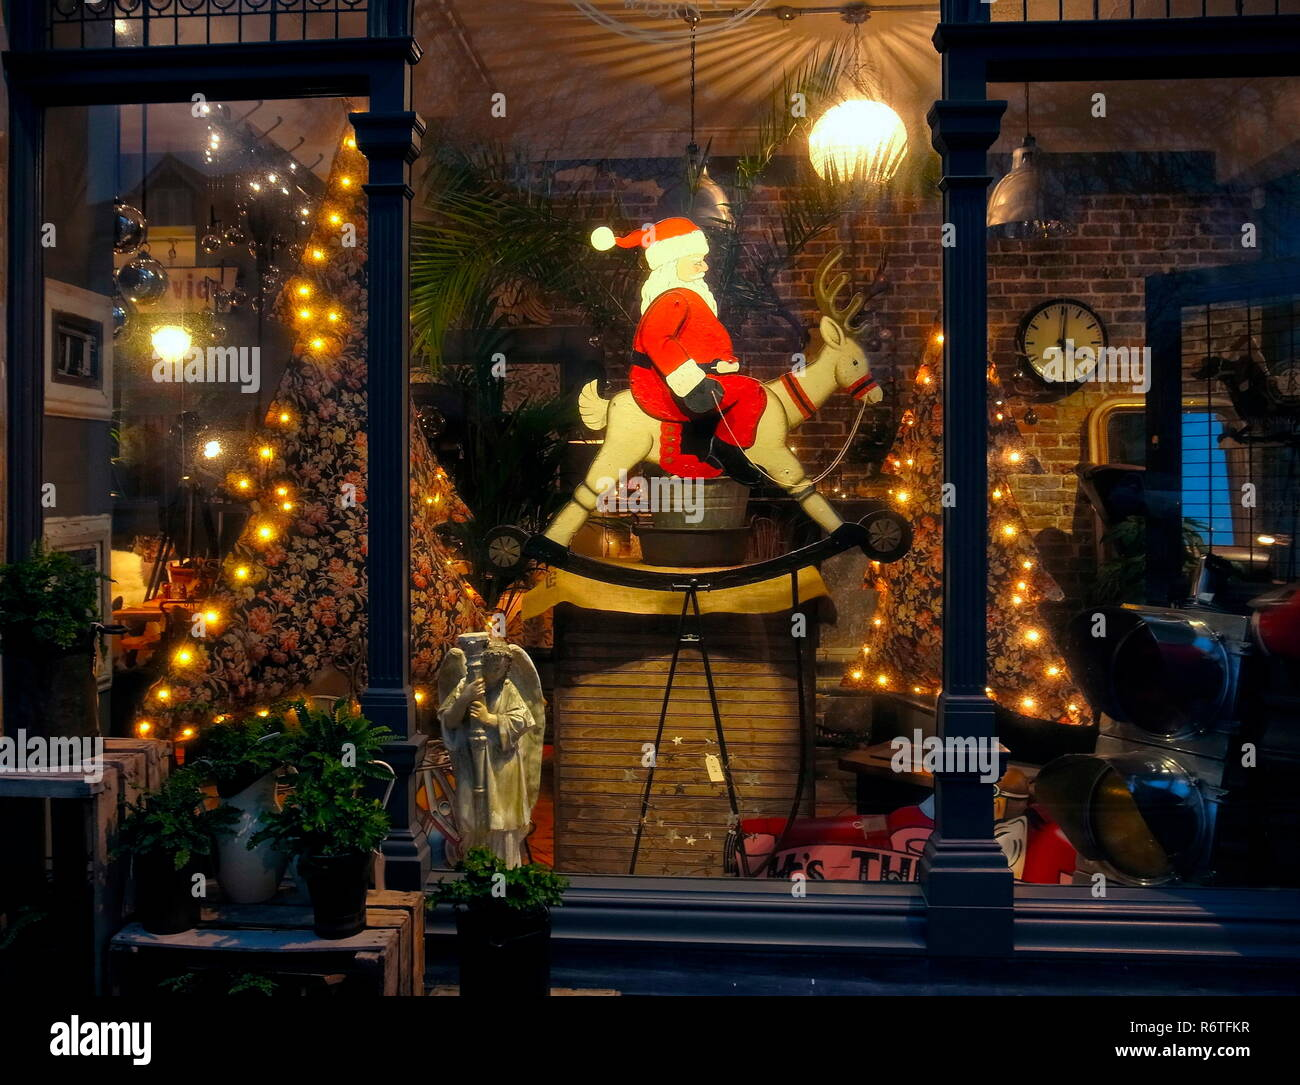 Worthing, Sussex, England. 6th December, 2018. Santa's rockin' Reindeer.Festive Christmas season antique shop window display in Rowlands Road today with vintage artifacts and Santa Claus riding an old rocking Reindeer. Photo: Jonathan Eastland/Ajax/Alamy Live News. - Stock Image